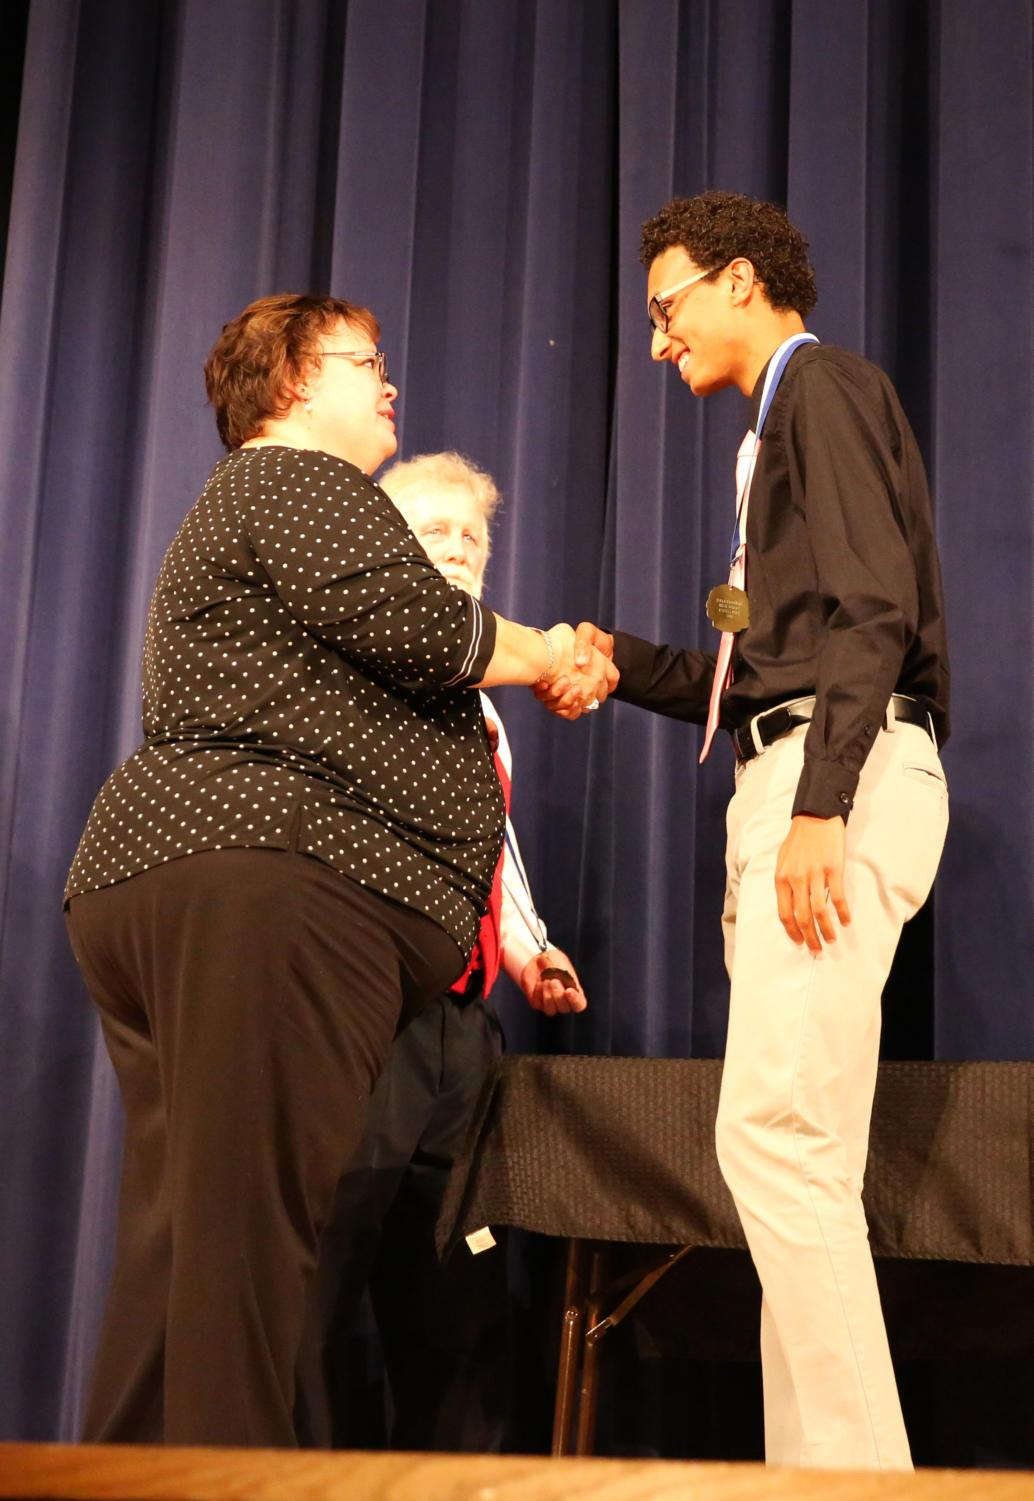 Senior+Isaiah+King+shakes+hands+with+principal+Cynthia+Prieto+after+receiving+his+medal.+King+received+an+%22Outstanding%22+distinction%2C+as+he+was+recognized+by+teachers+from+four+separate+departments%2C+one+of+three+students+to+do+so.+